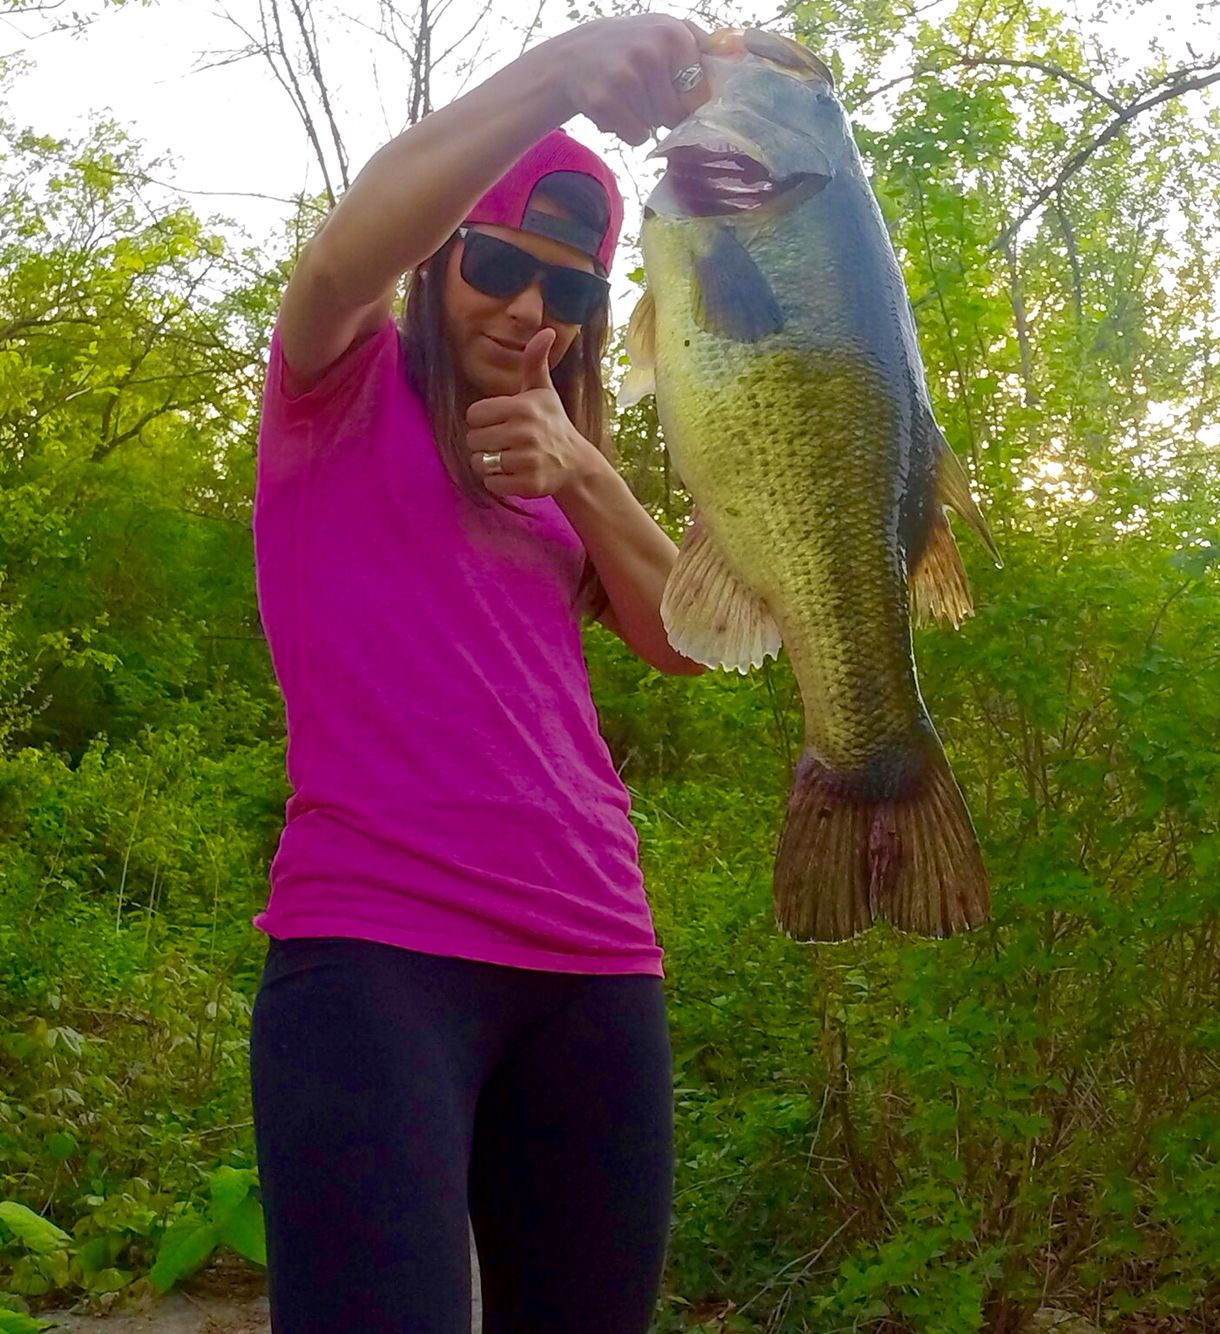 Susquehanna river bass fishing - biggest bass ever for me